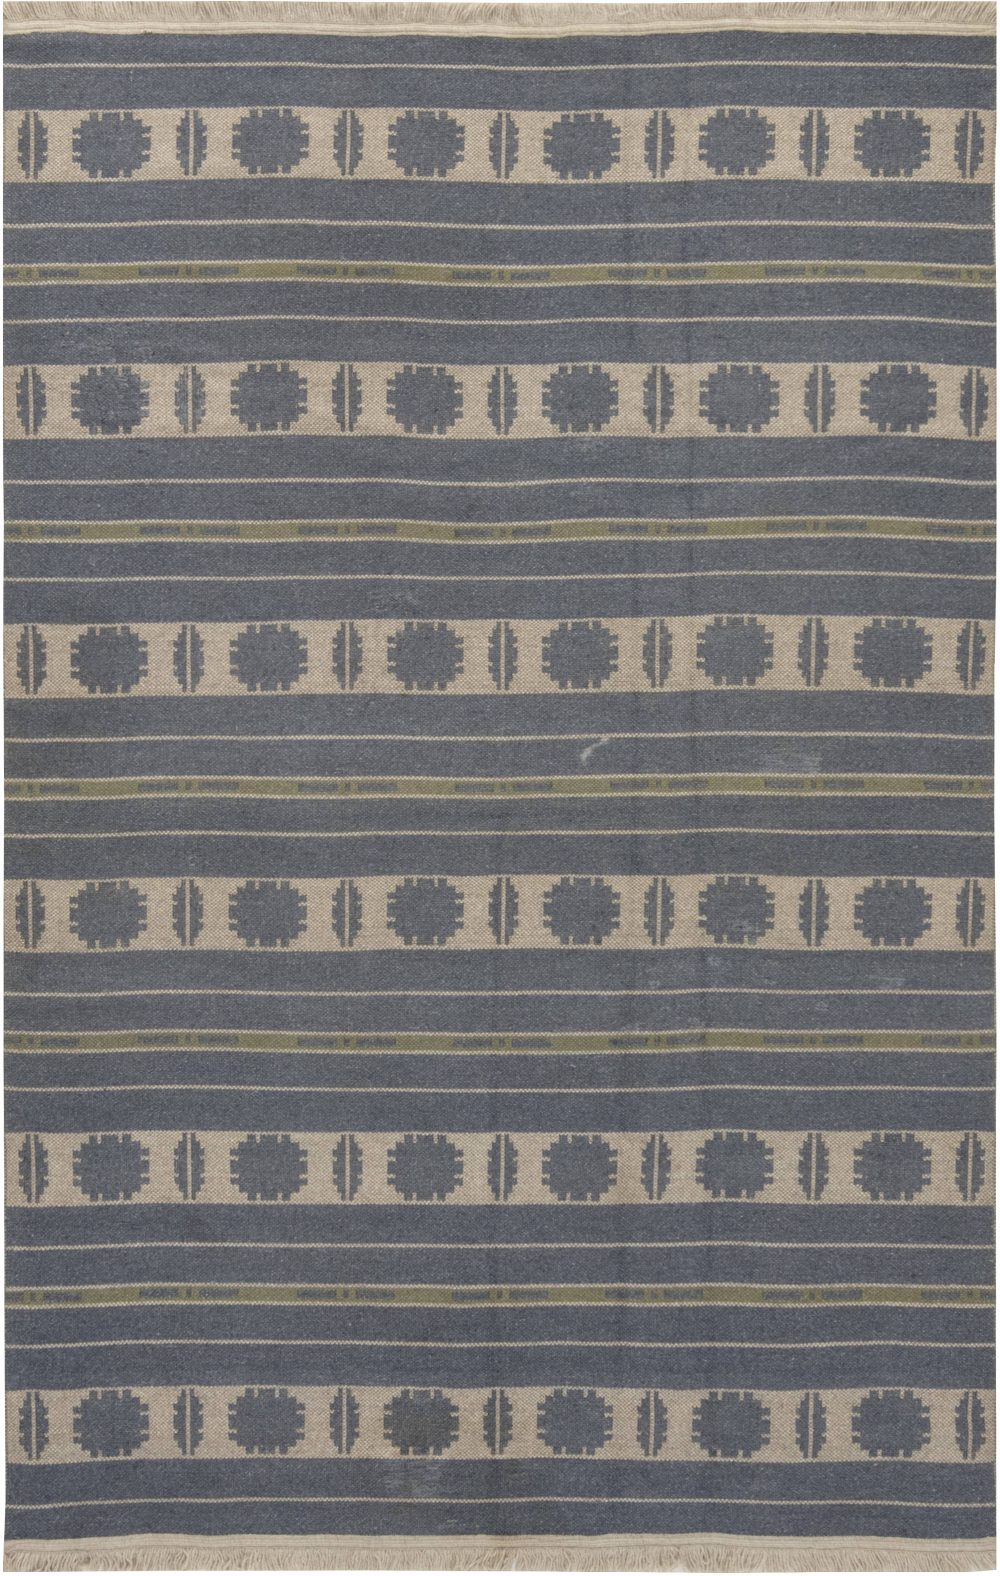 Swedish Beige, Blue and Green Double Sided Flat-Woven Wool Rug BB6660